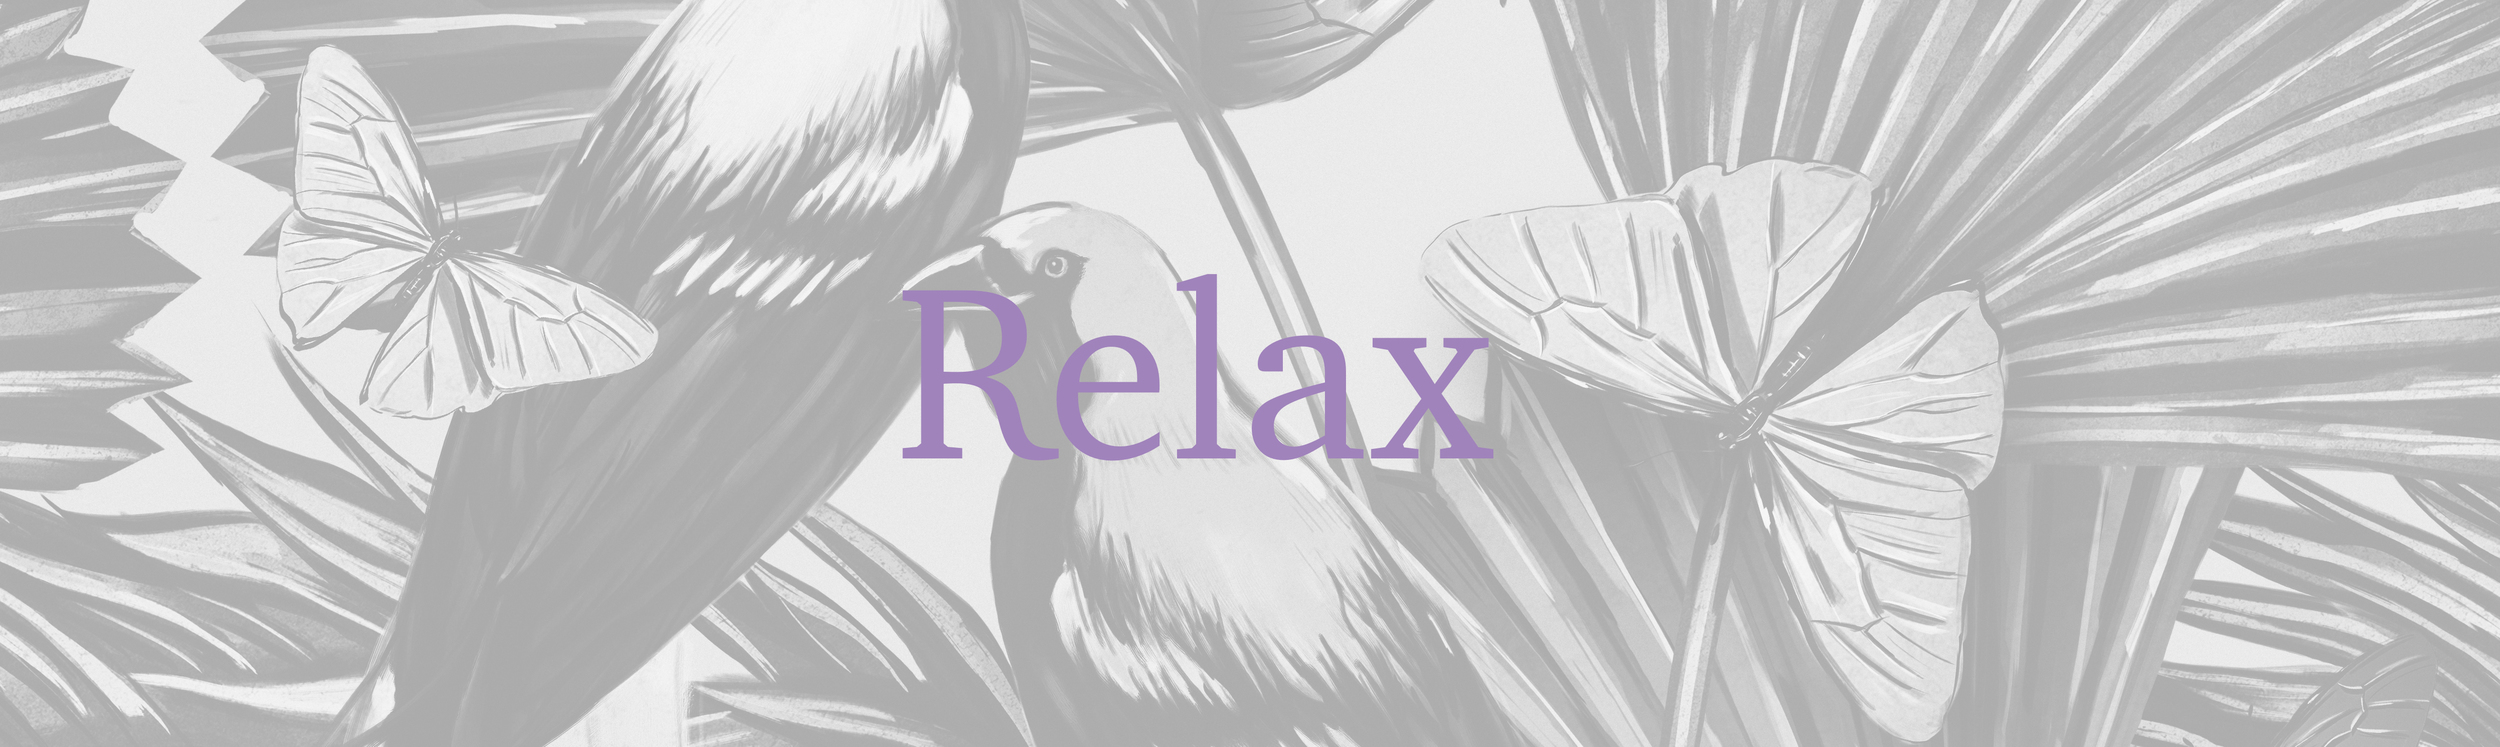 Sit back and relax and let the stress slip   away. Relaxation helps the mind calm down and your body feel rejuvenated. With our hectic lives be kids or work you need to make sure you look after yourself to ensure you can look after others.